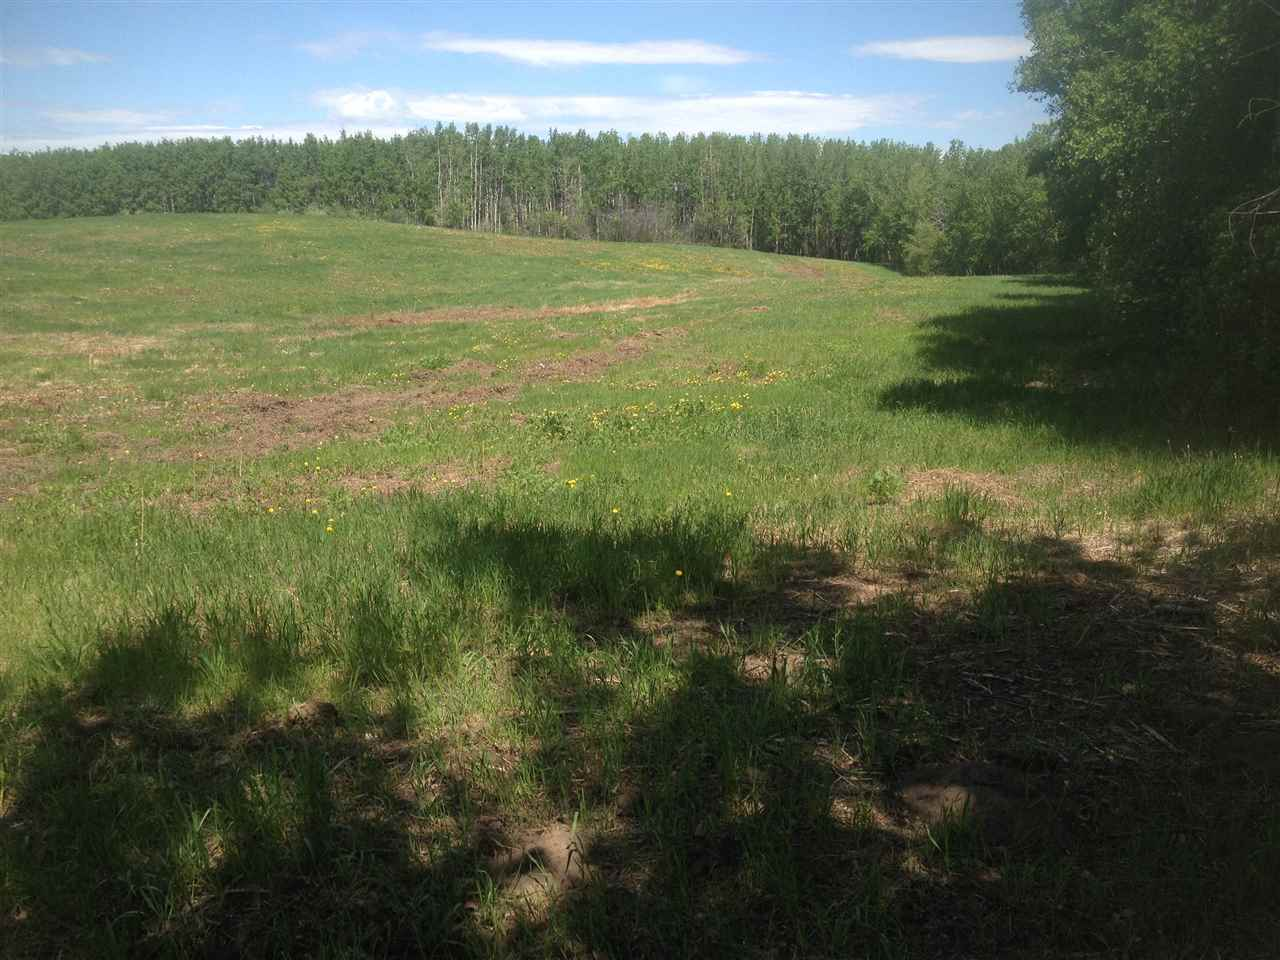 Photo 4: 52502 Range Road 22A: Rural Parkland County Rural Land/Vacant Lot for sale : MLS(r) # E4069524